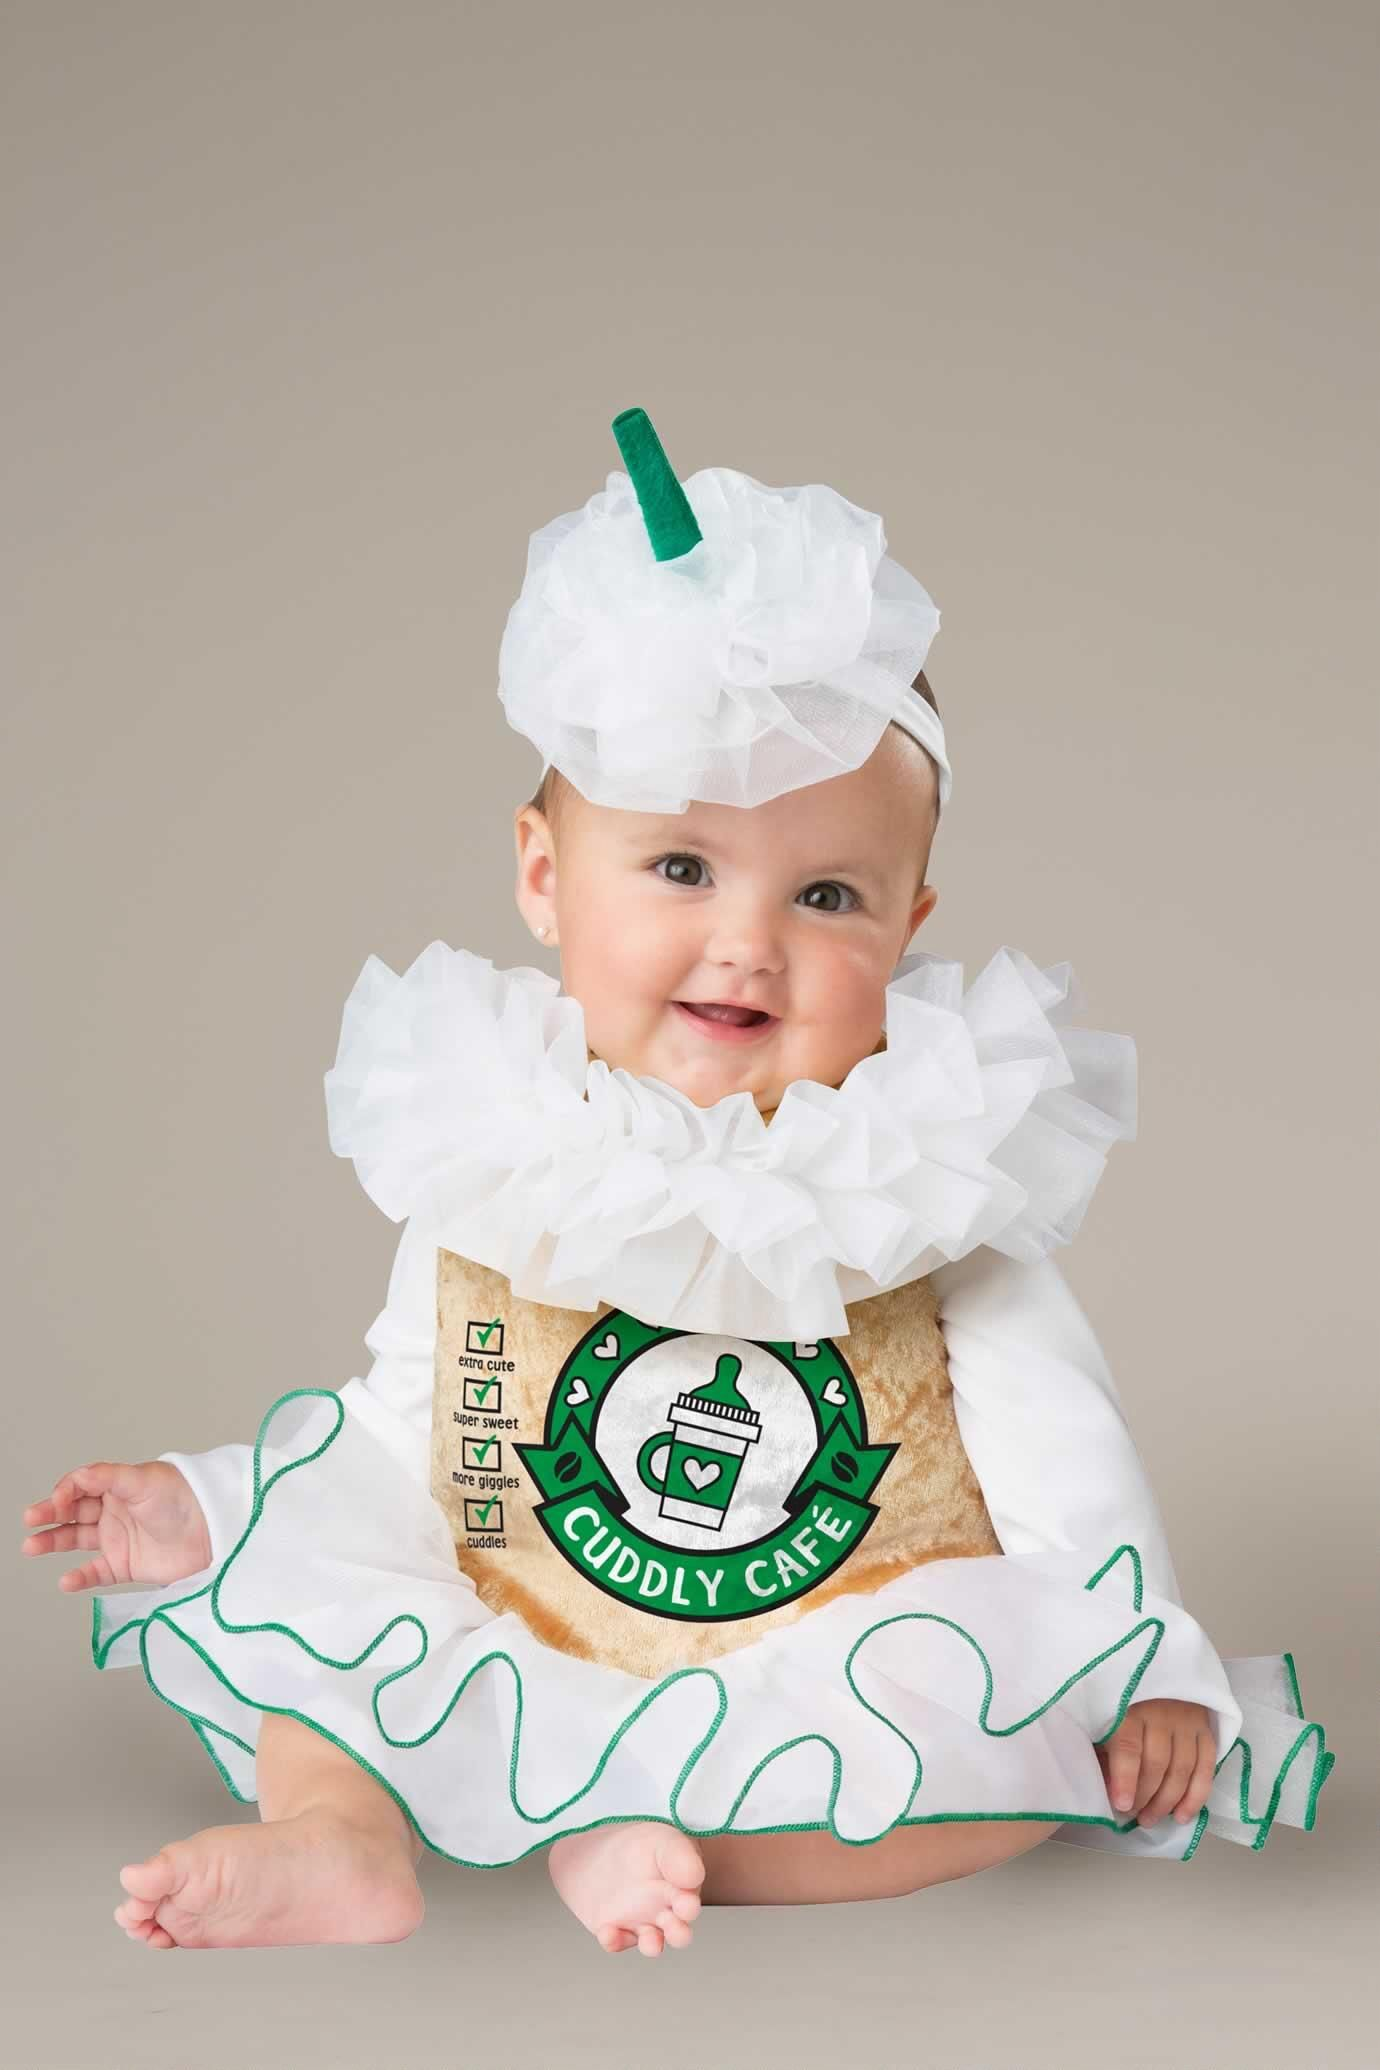 cappuccino costume for baby in 2018 | halloween costumes | halloween